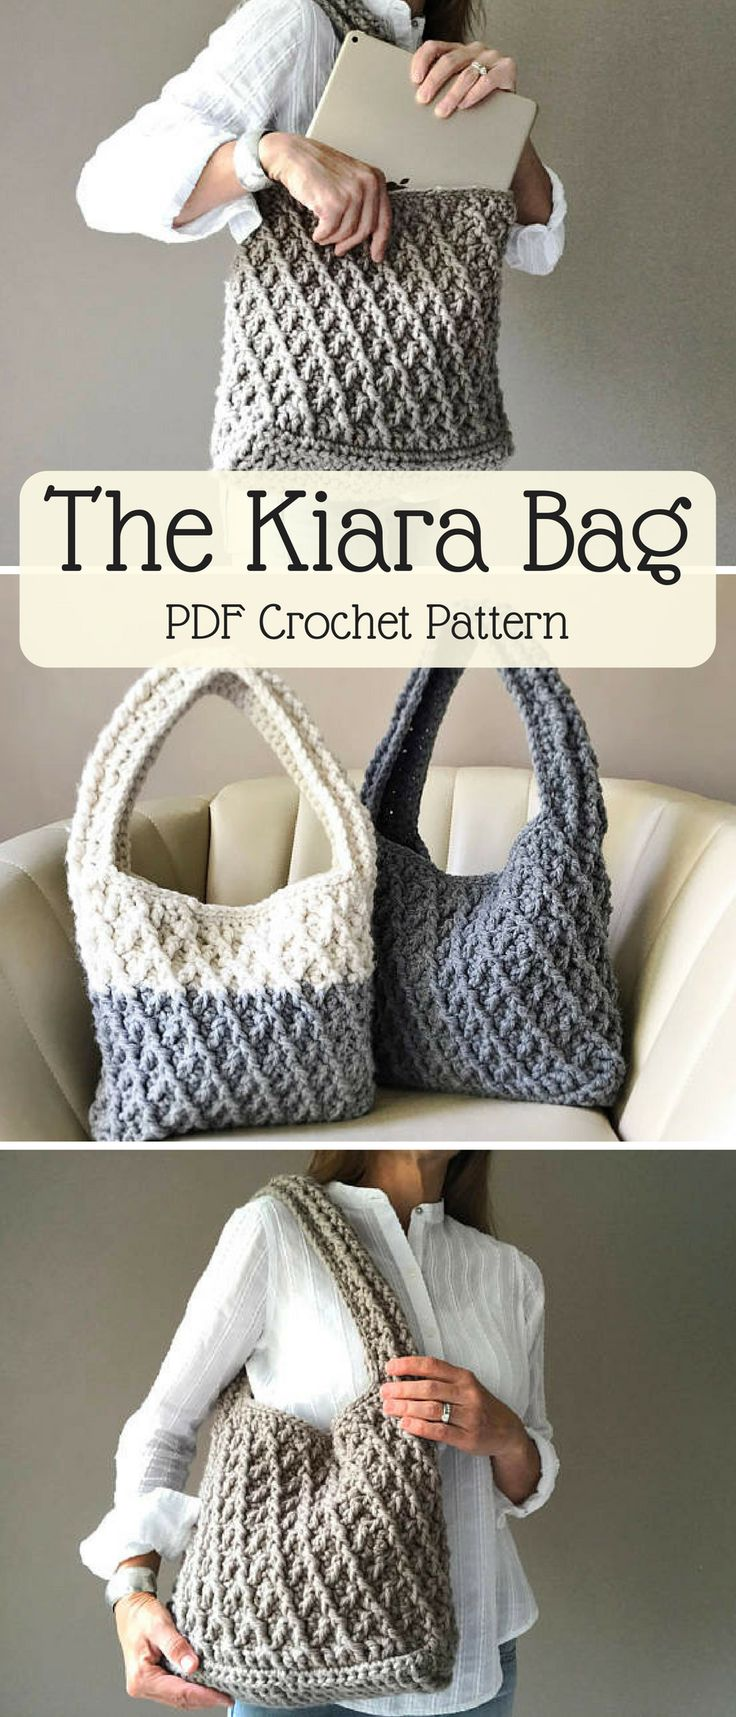 I can totally see myself wearing this beautiful crochet bag to the office. But first I have to make it! #crochetbag #ad #workbag #crochetproject #pattern #etsy